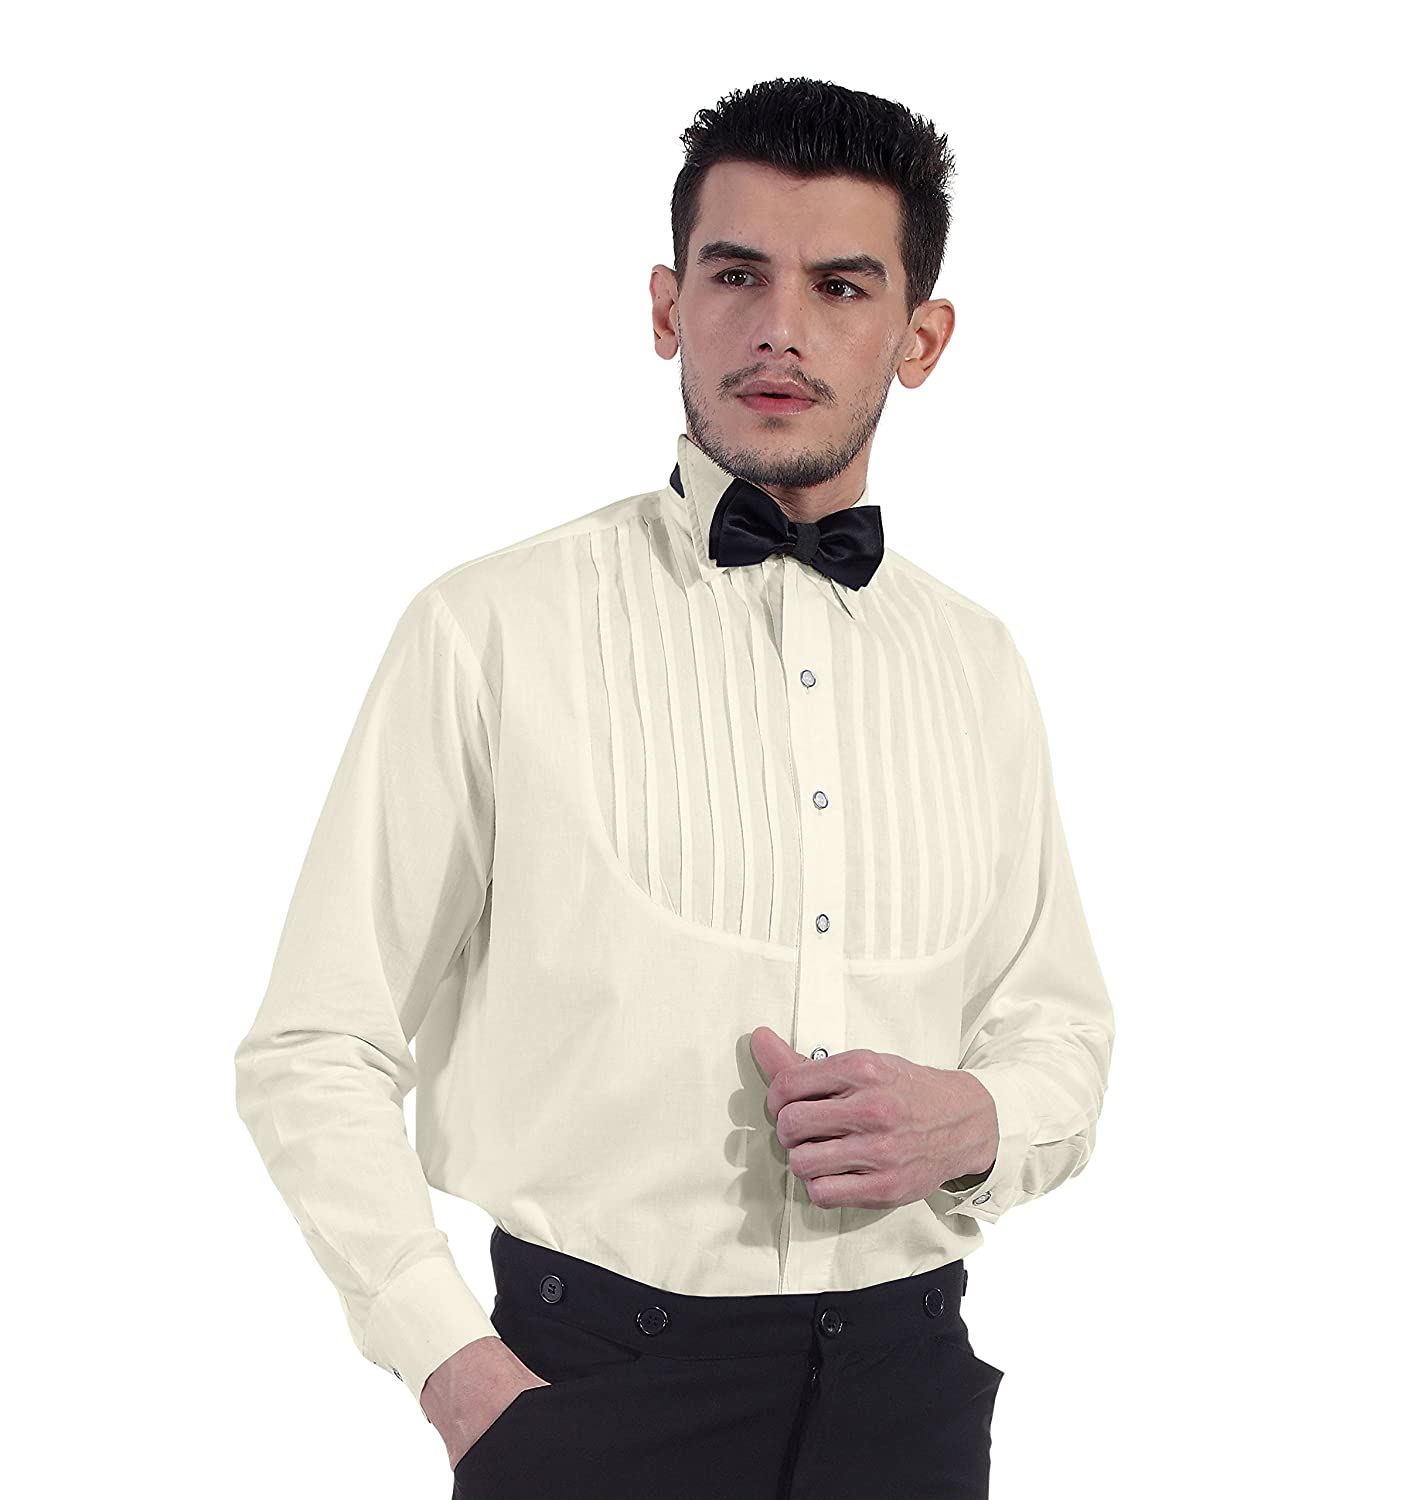 Victorian Men's Shirts- Wingtip, Gambler, Bib, Collarless ThePirateDressing Steampunk Victorian Cosplay Costume 100% Cotton Classic Mens Shirt C1289 $36.95 AT vintagedancer.com